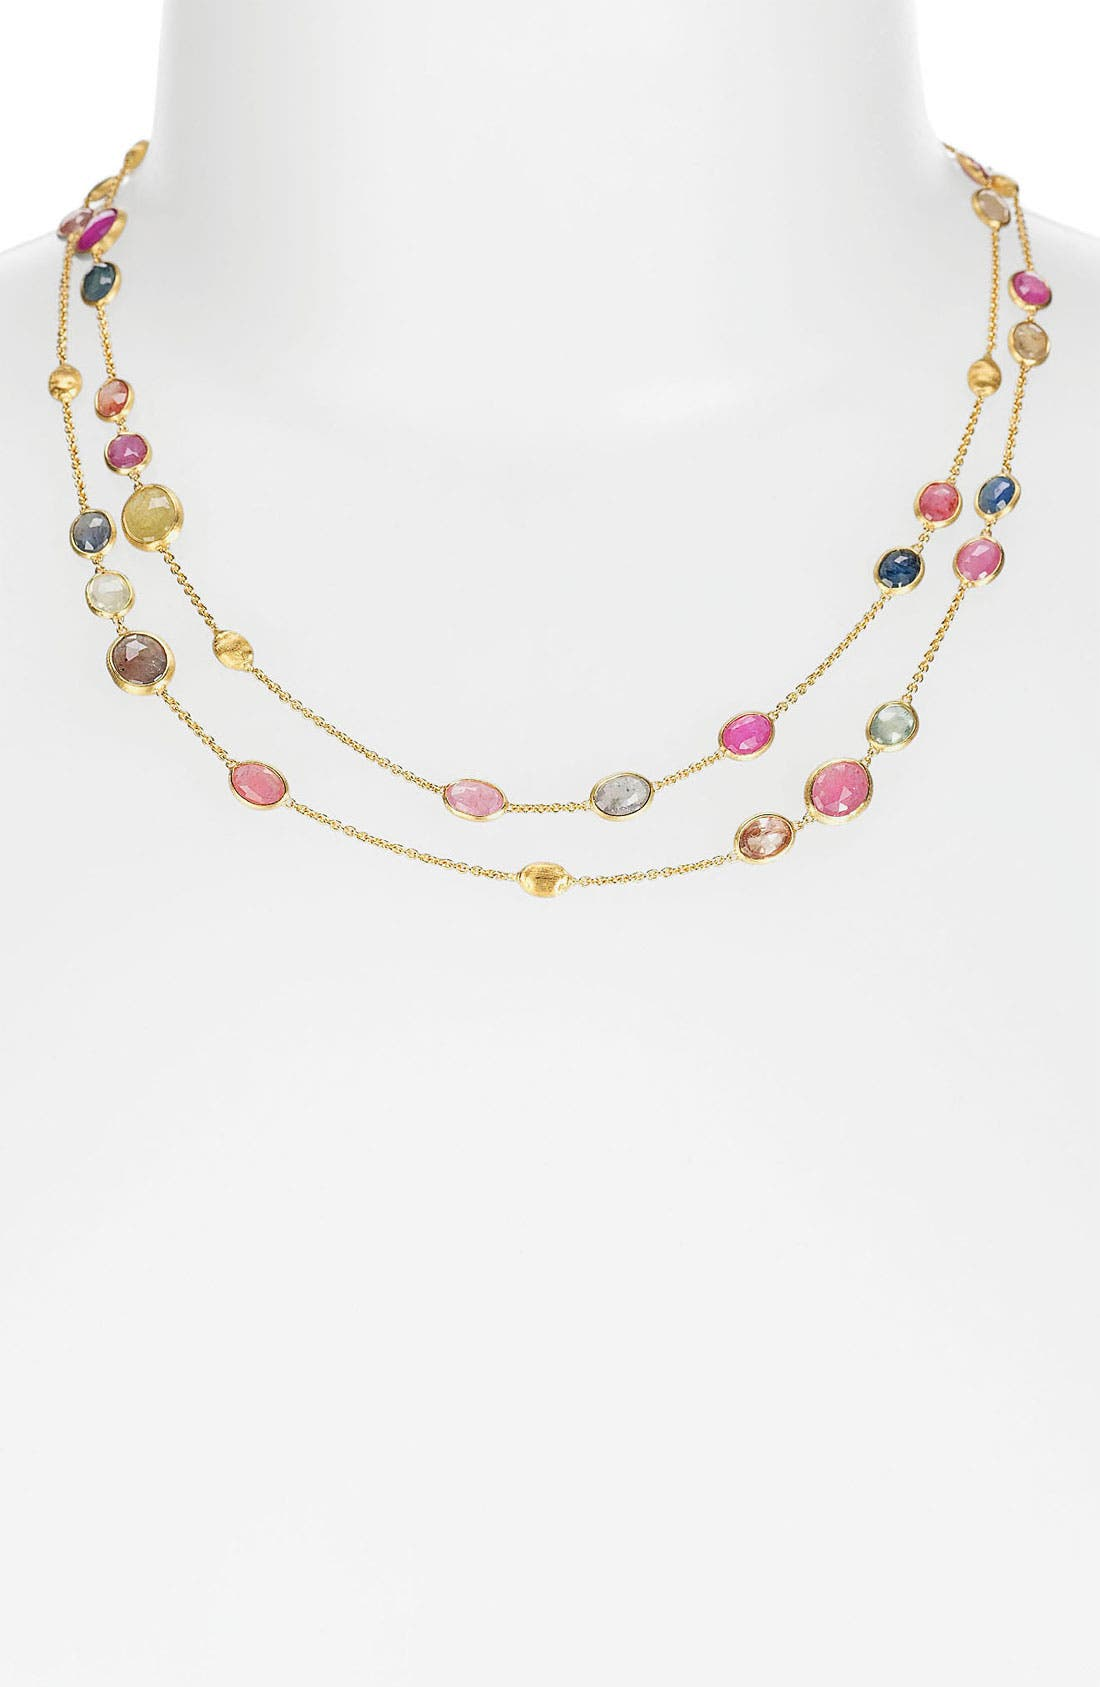 Main Image - Marco Bicego 'Sivilgia' Long Sapphire Station Necklace